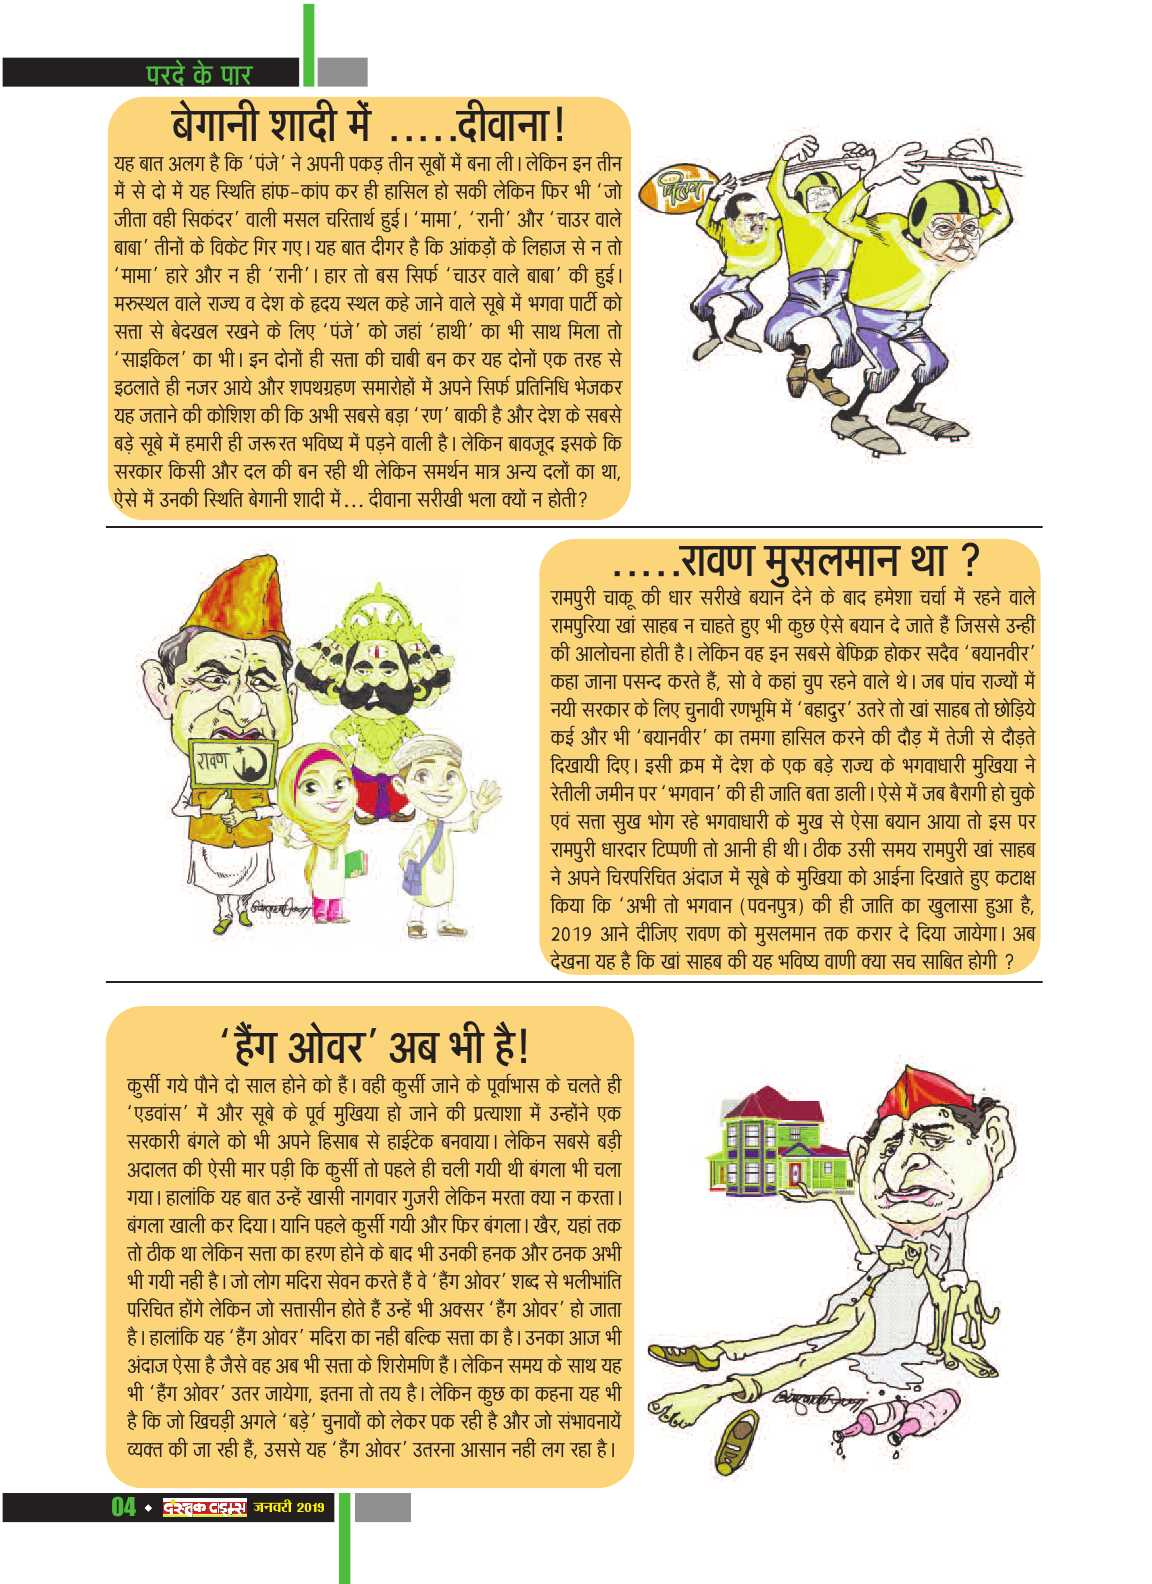 Dastak Times for E-Magazine 15 Jan 2019 new6